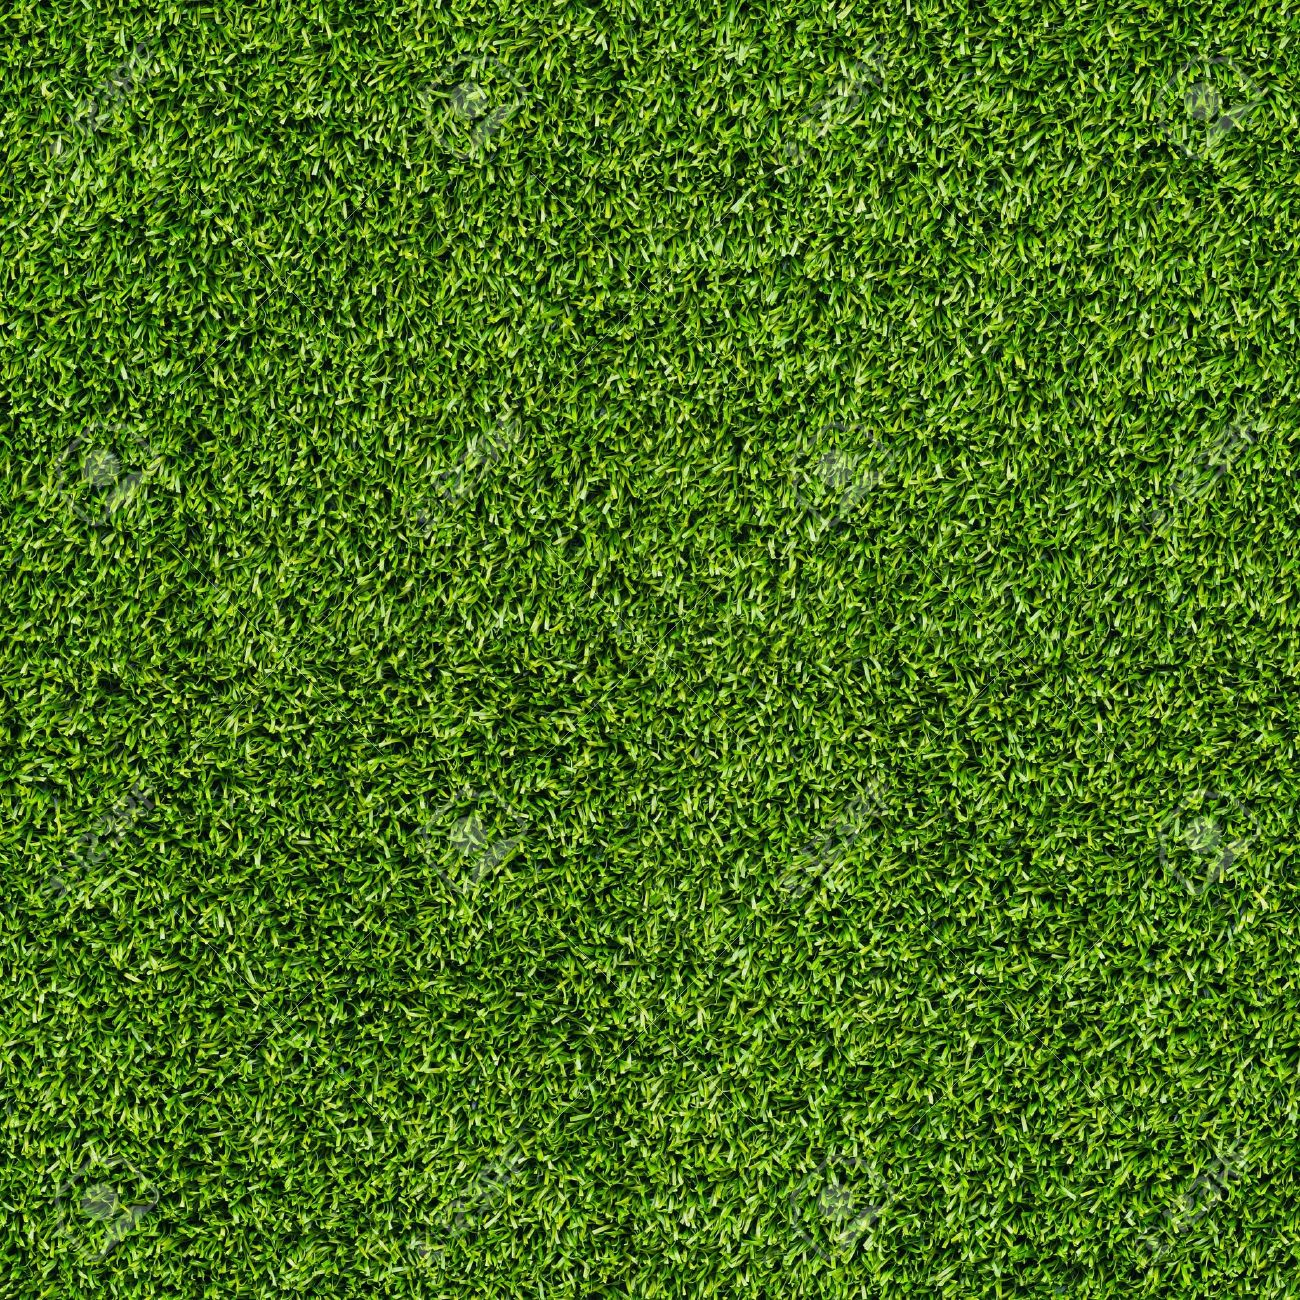 Seamless Artificial Grass Field Texture Stock Photo Picture And